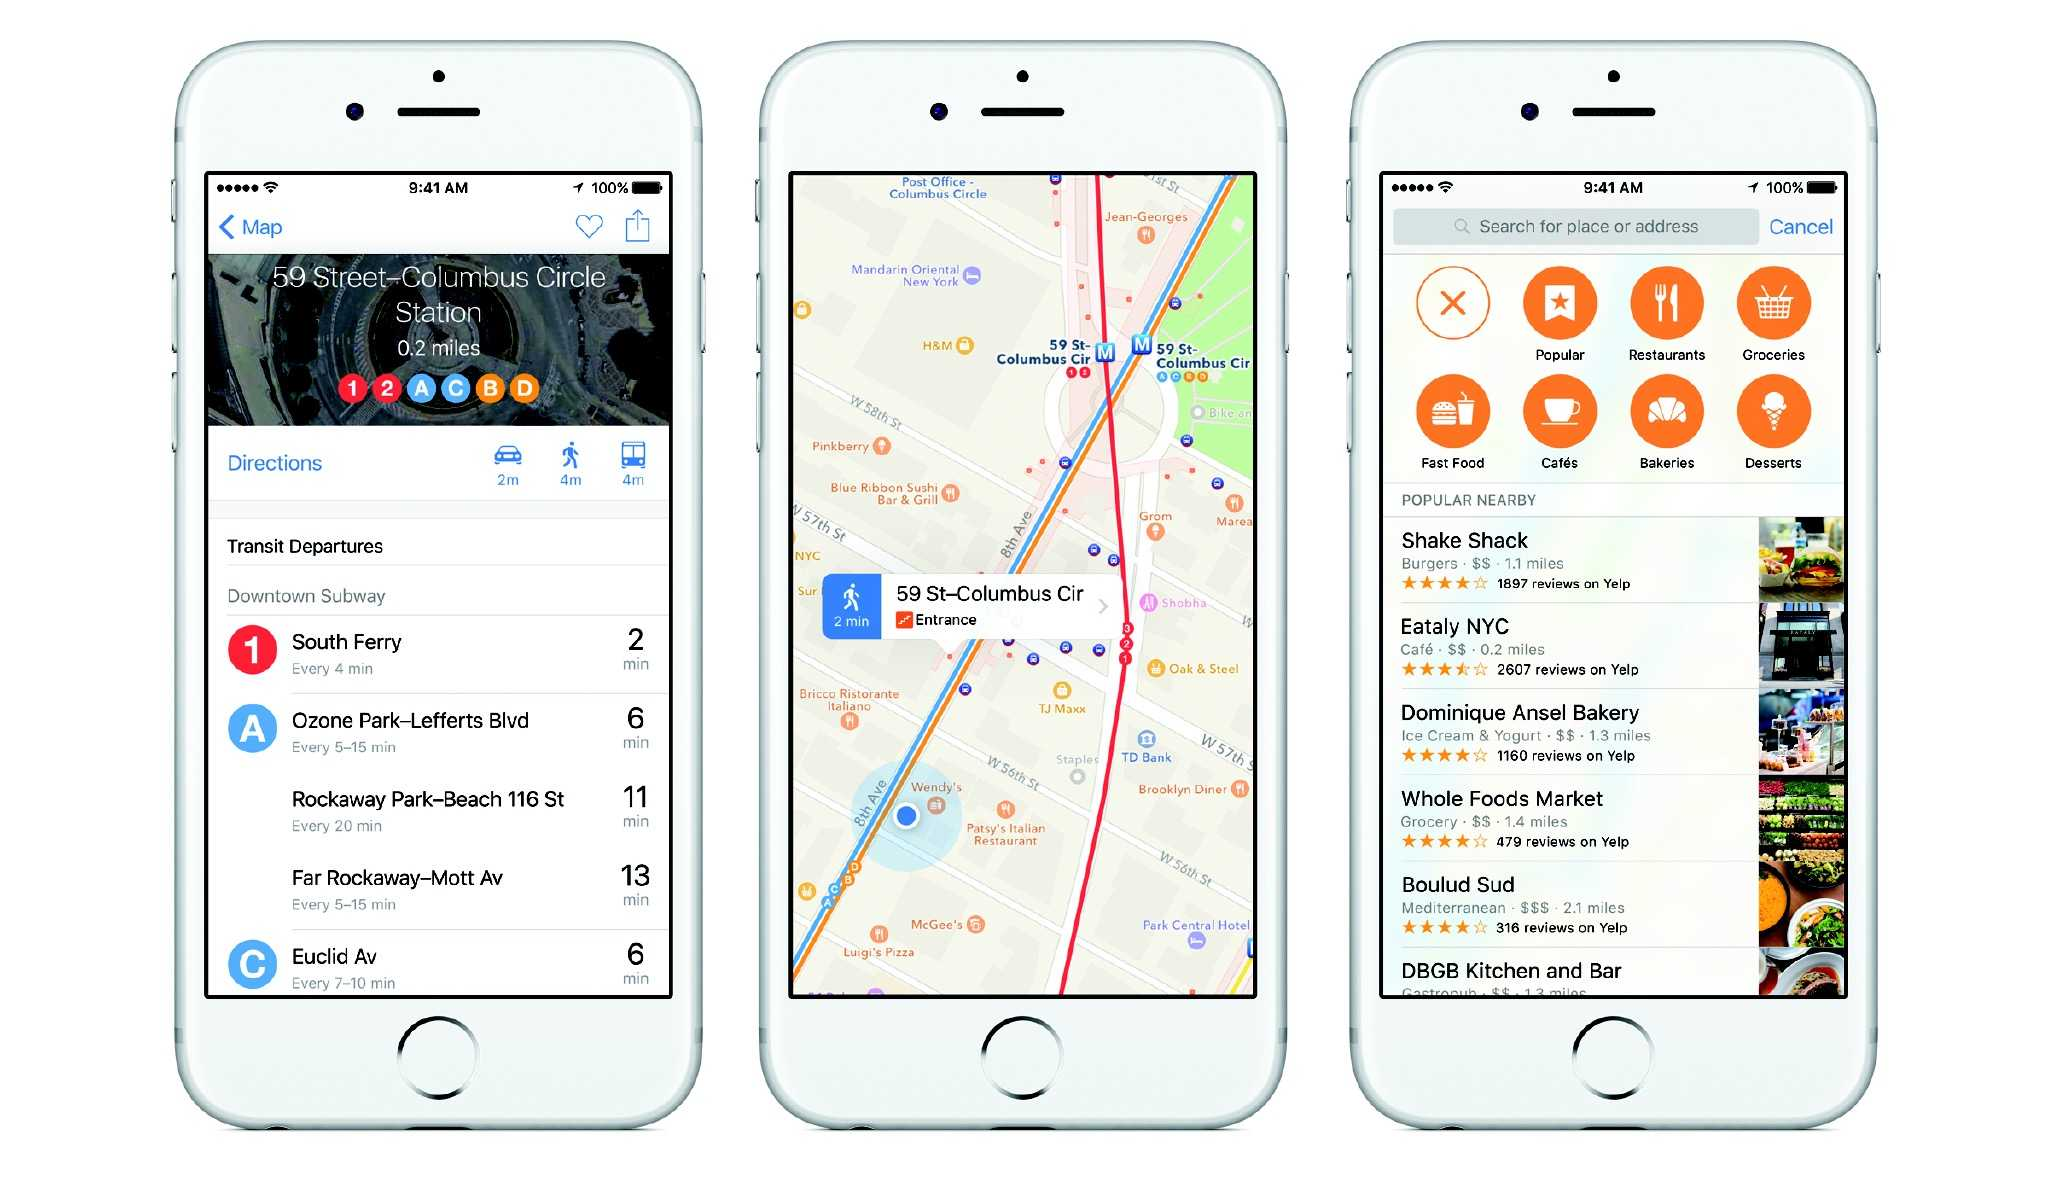 iOS 9 transit maps